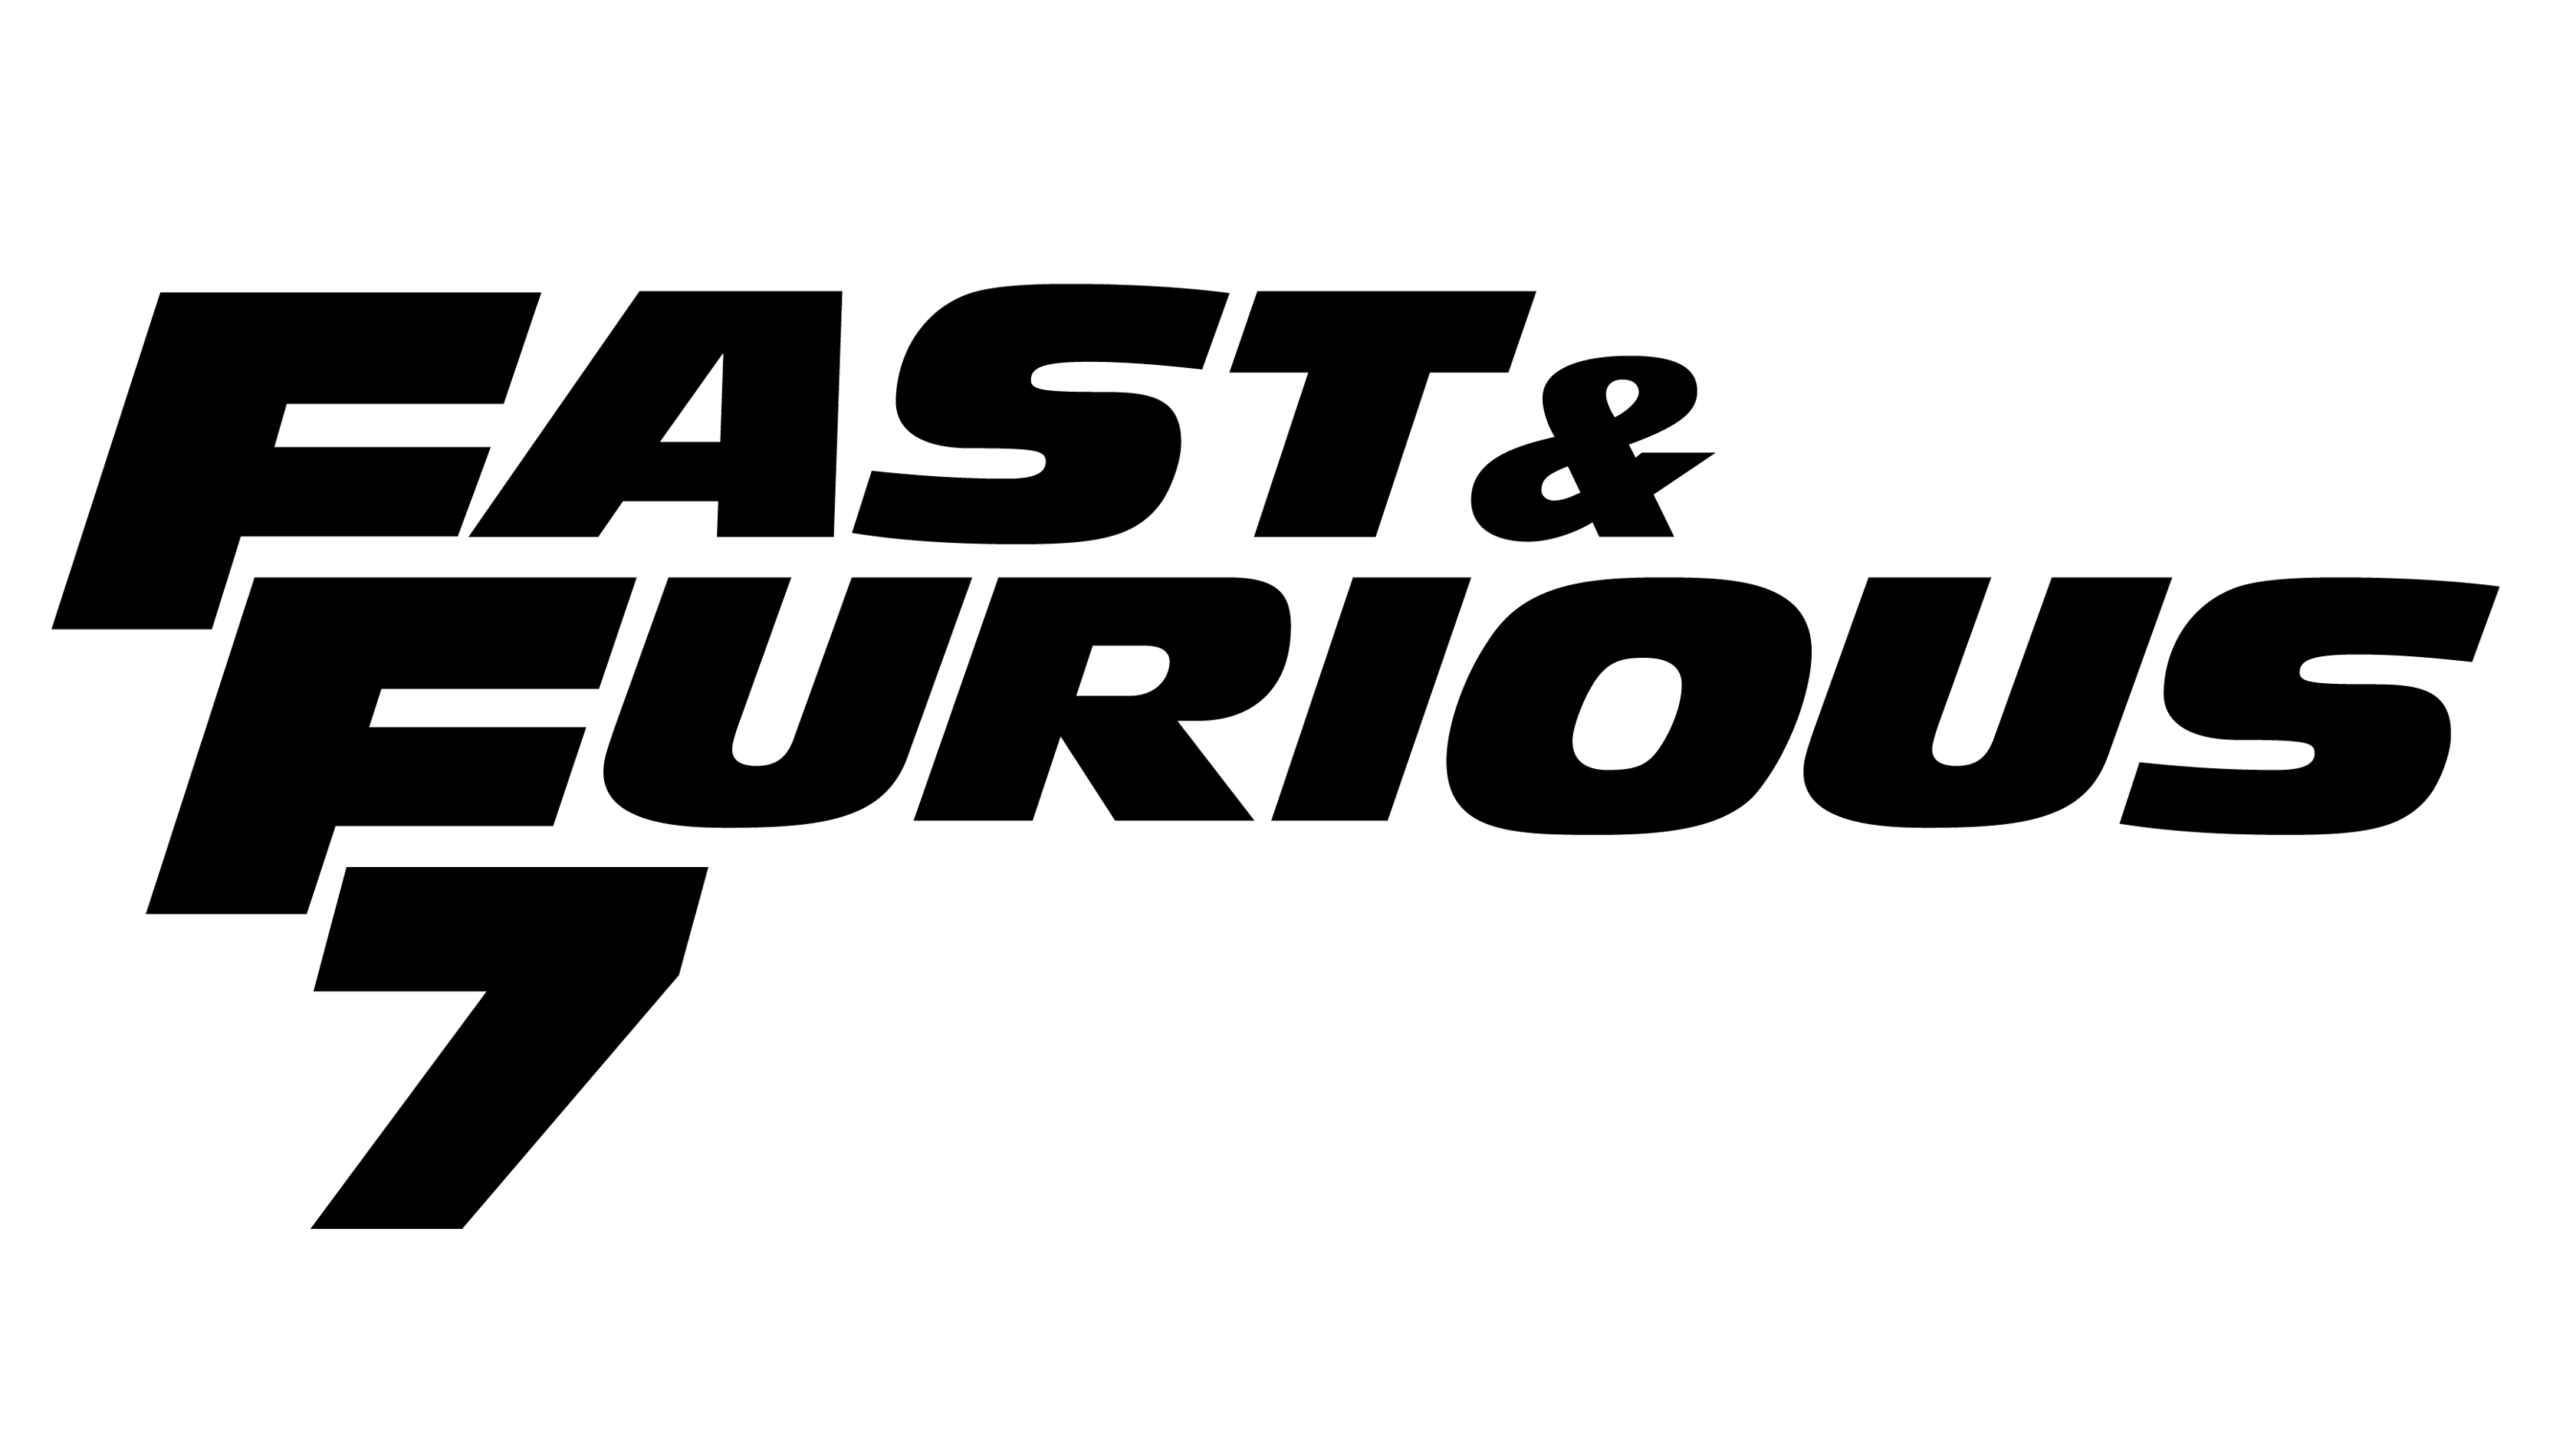 Furious 7 Hd Wallpaper Background Image 3360x1890 Id 589246